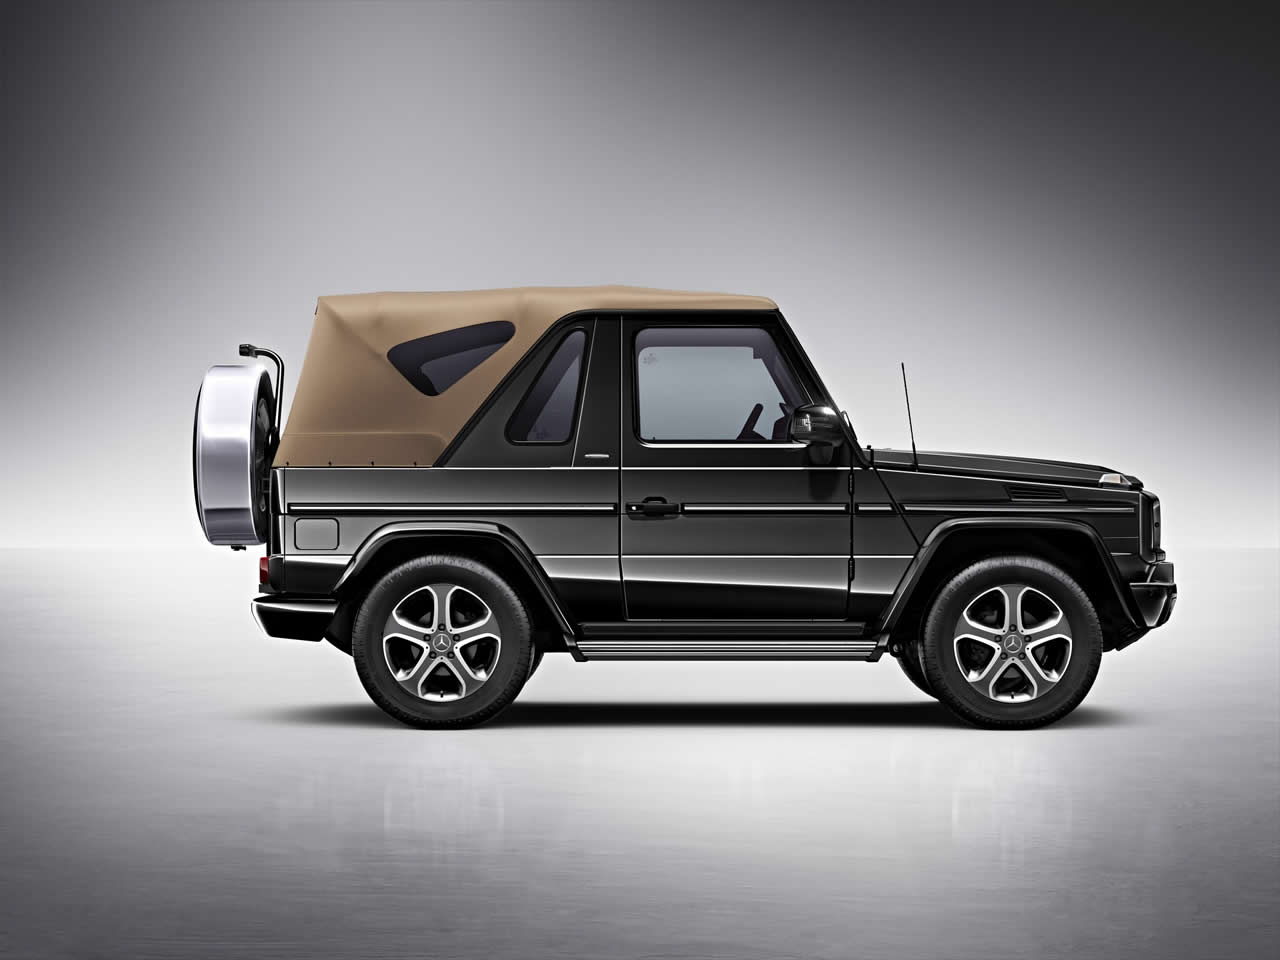 Mercedes g class cabriolet buying guide for Mercedes benz g class cabriolet